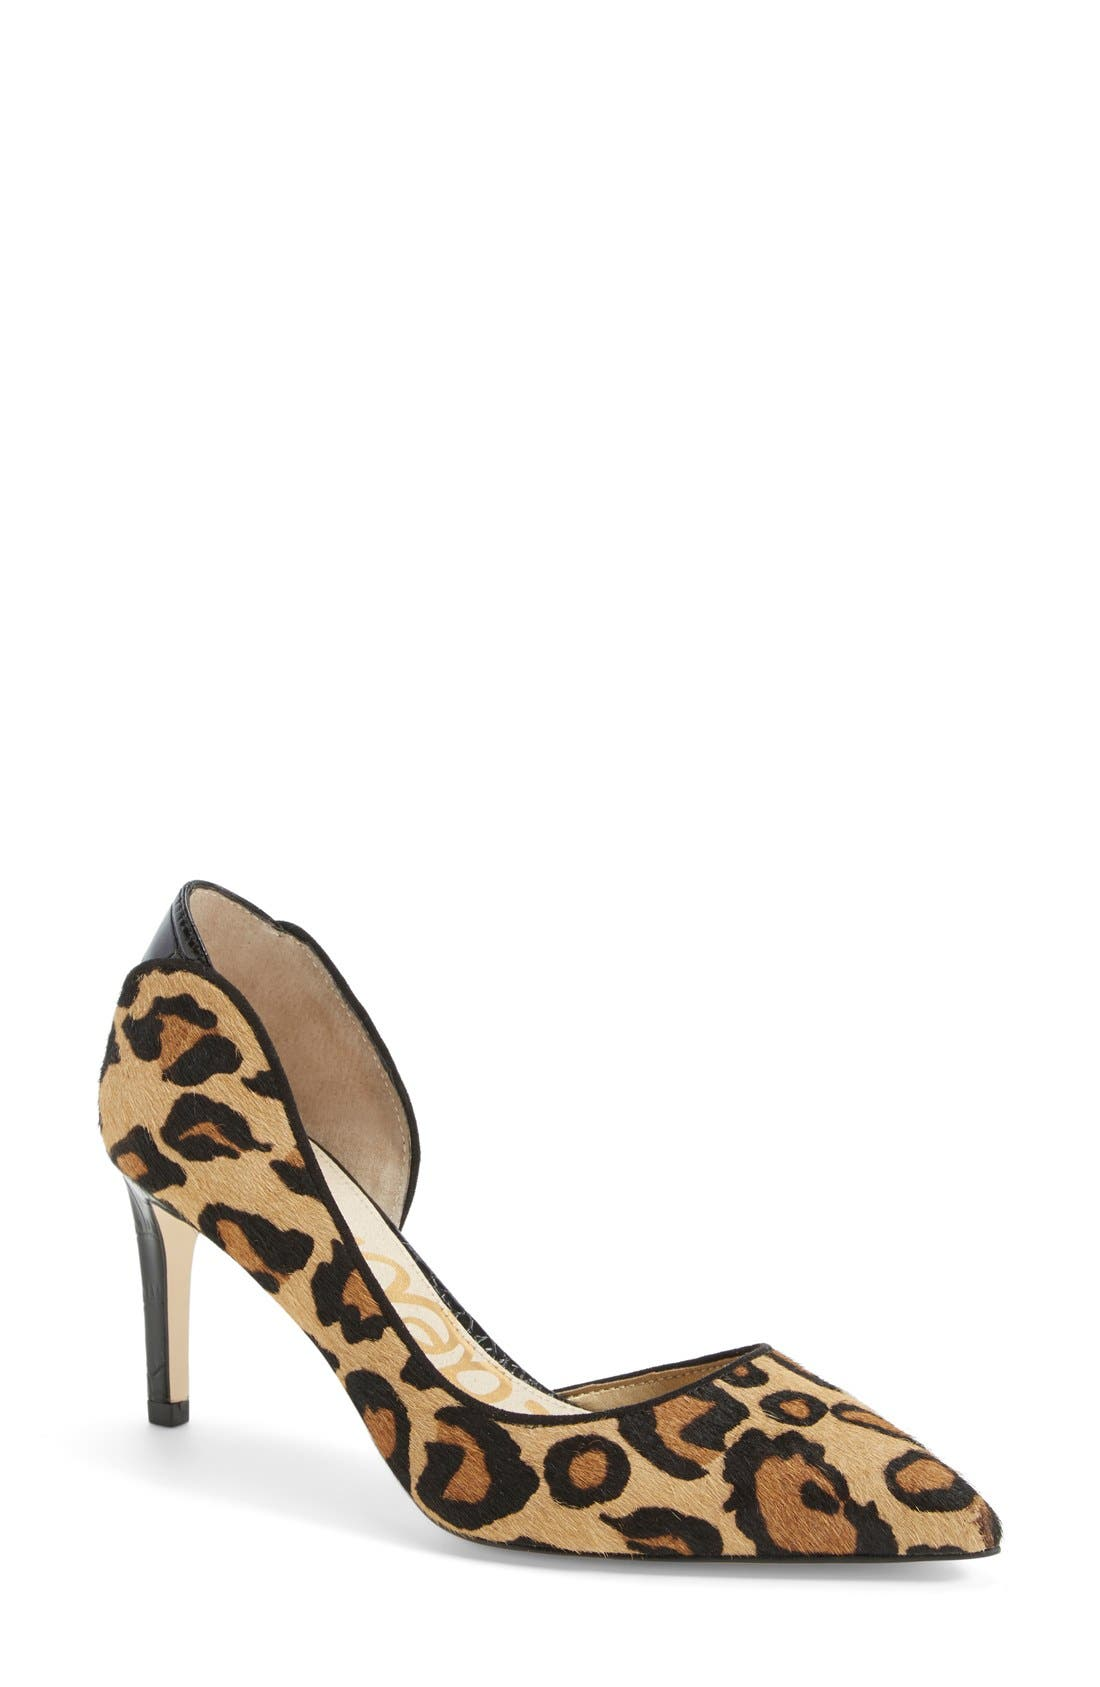 Alternate Image 1 Selected - Sam Edelman 'Onyx' Half d'Orsay Pointy Toe Pump (Women)